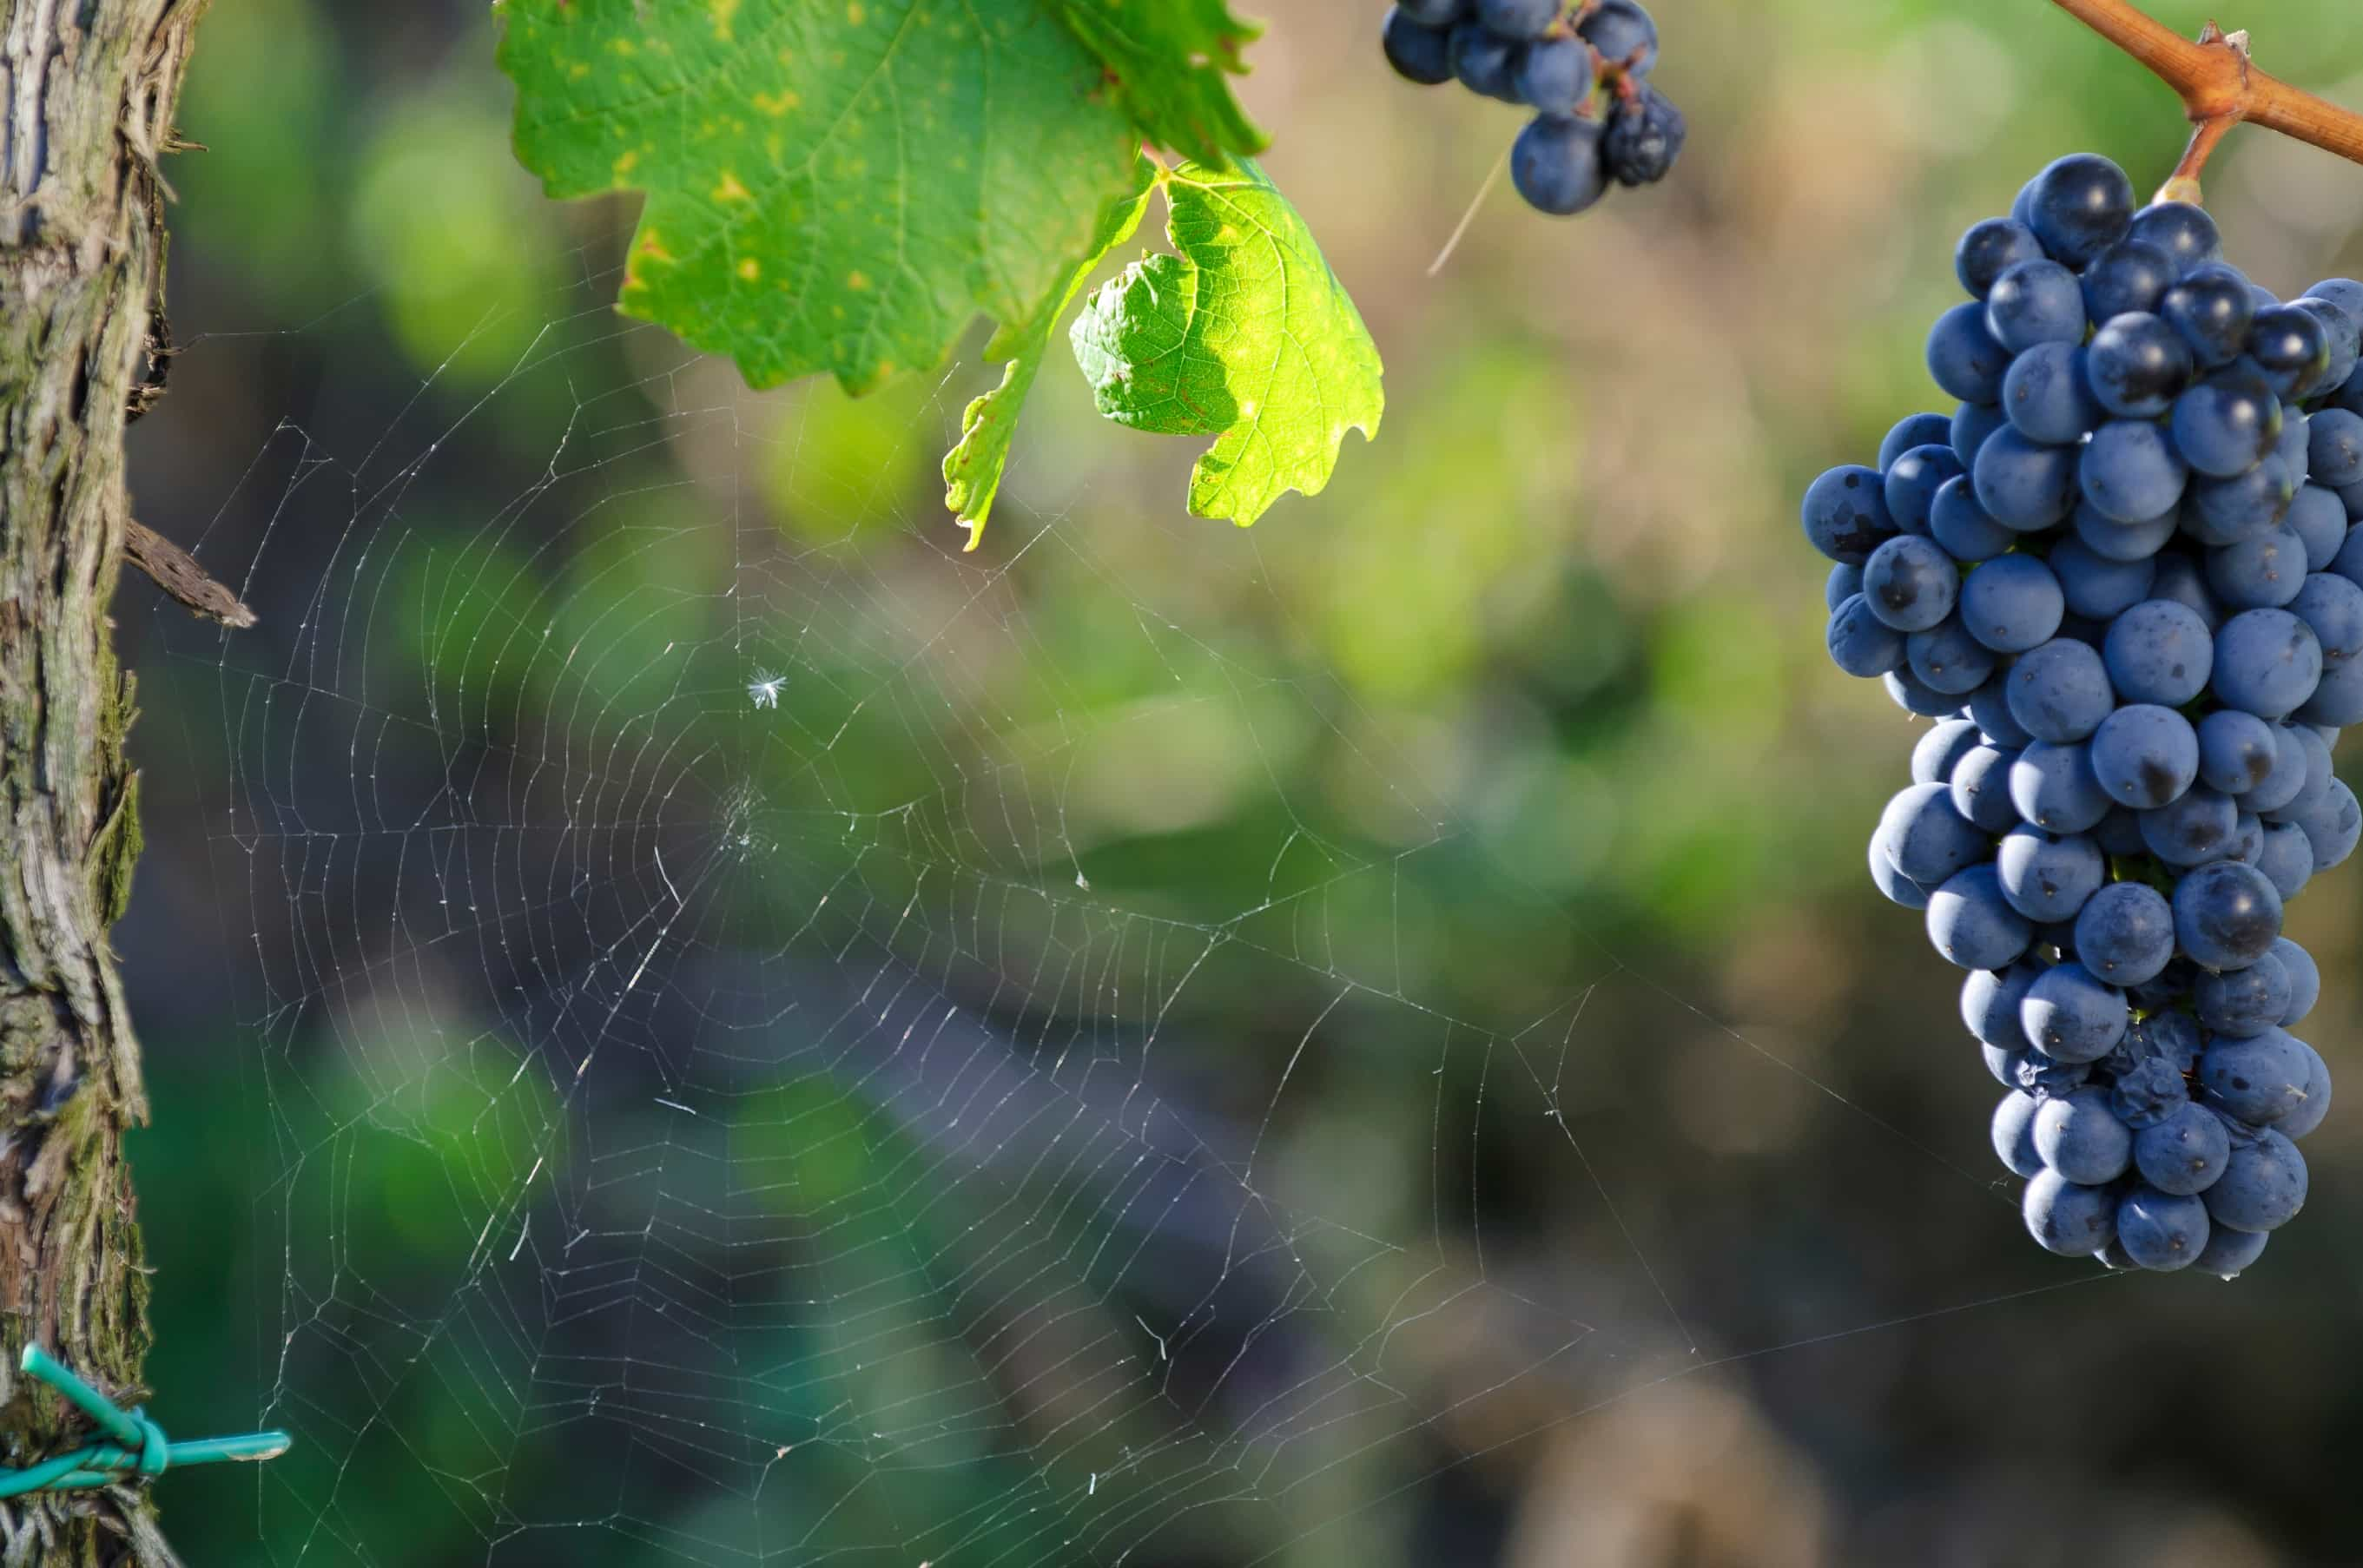 A Woman Found a Black Widow in Grapes